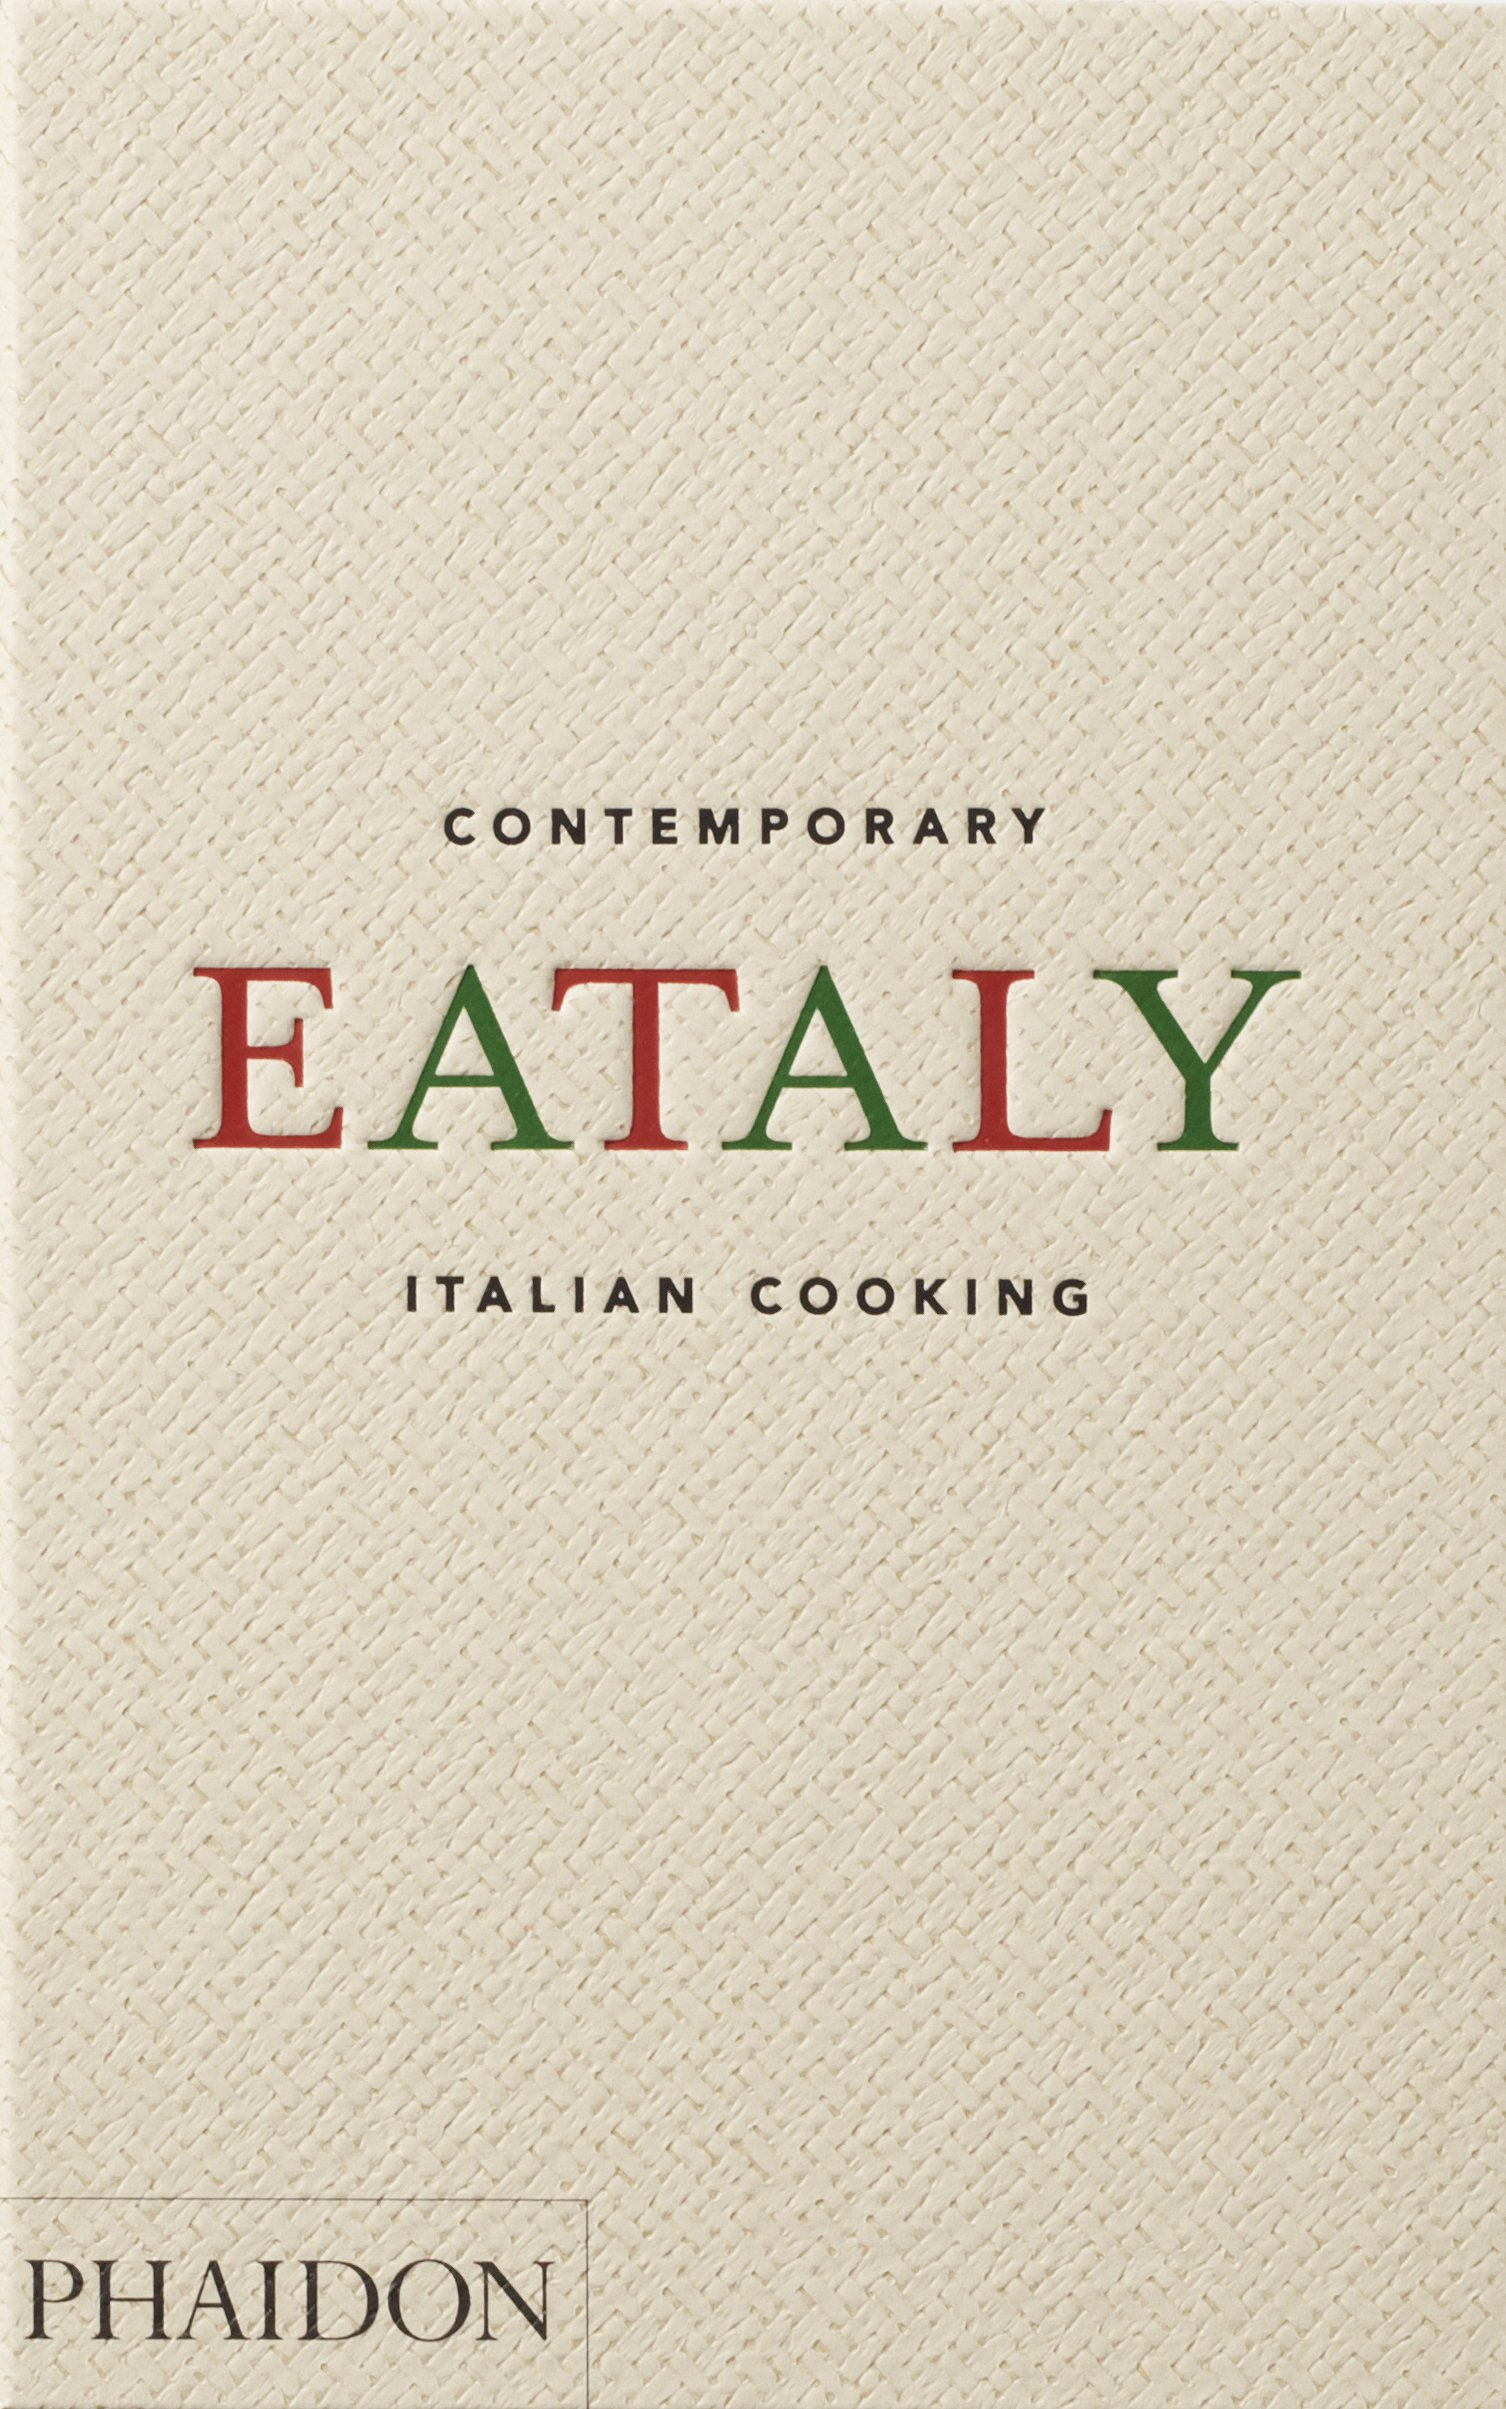 Eataly: Contemporary Italian Cooking by Phaidon Press